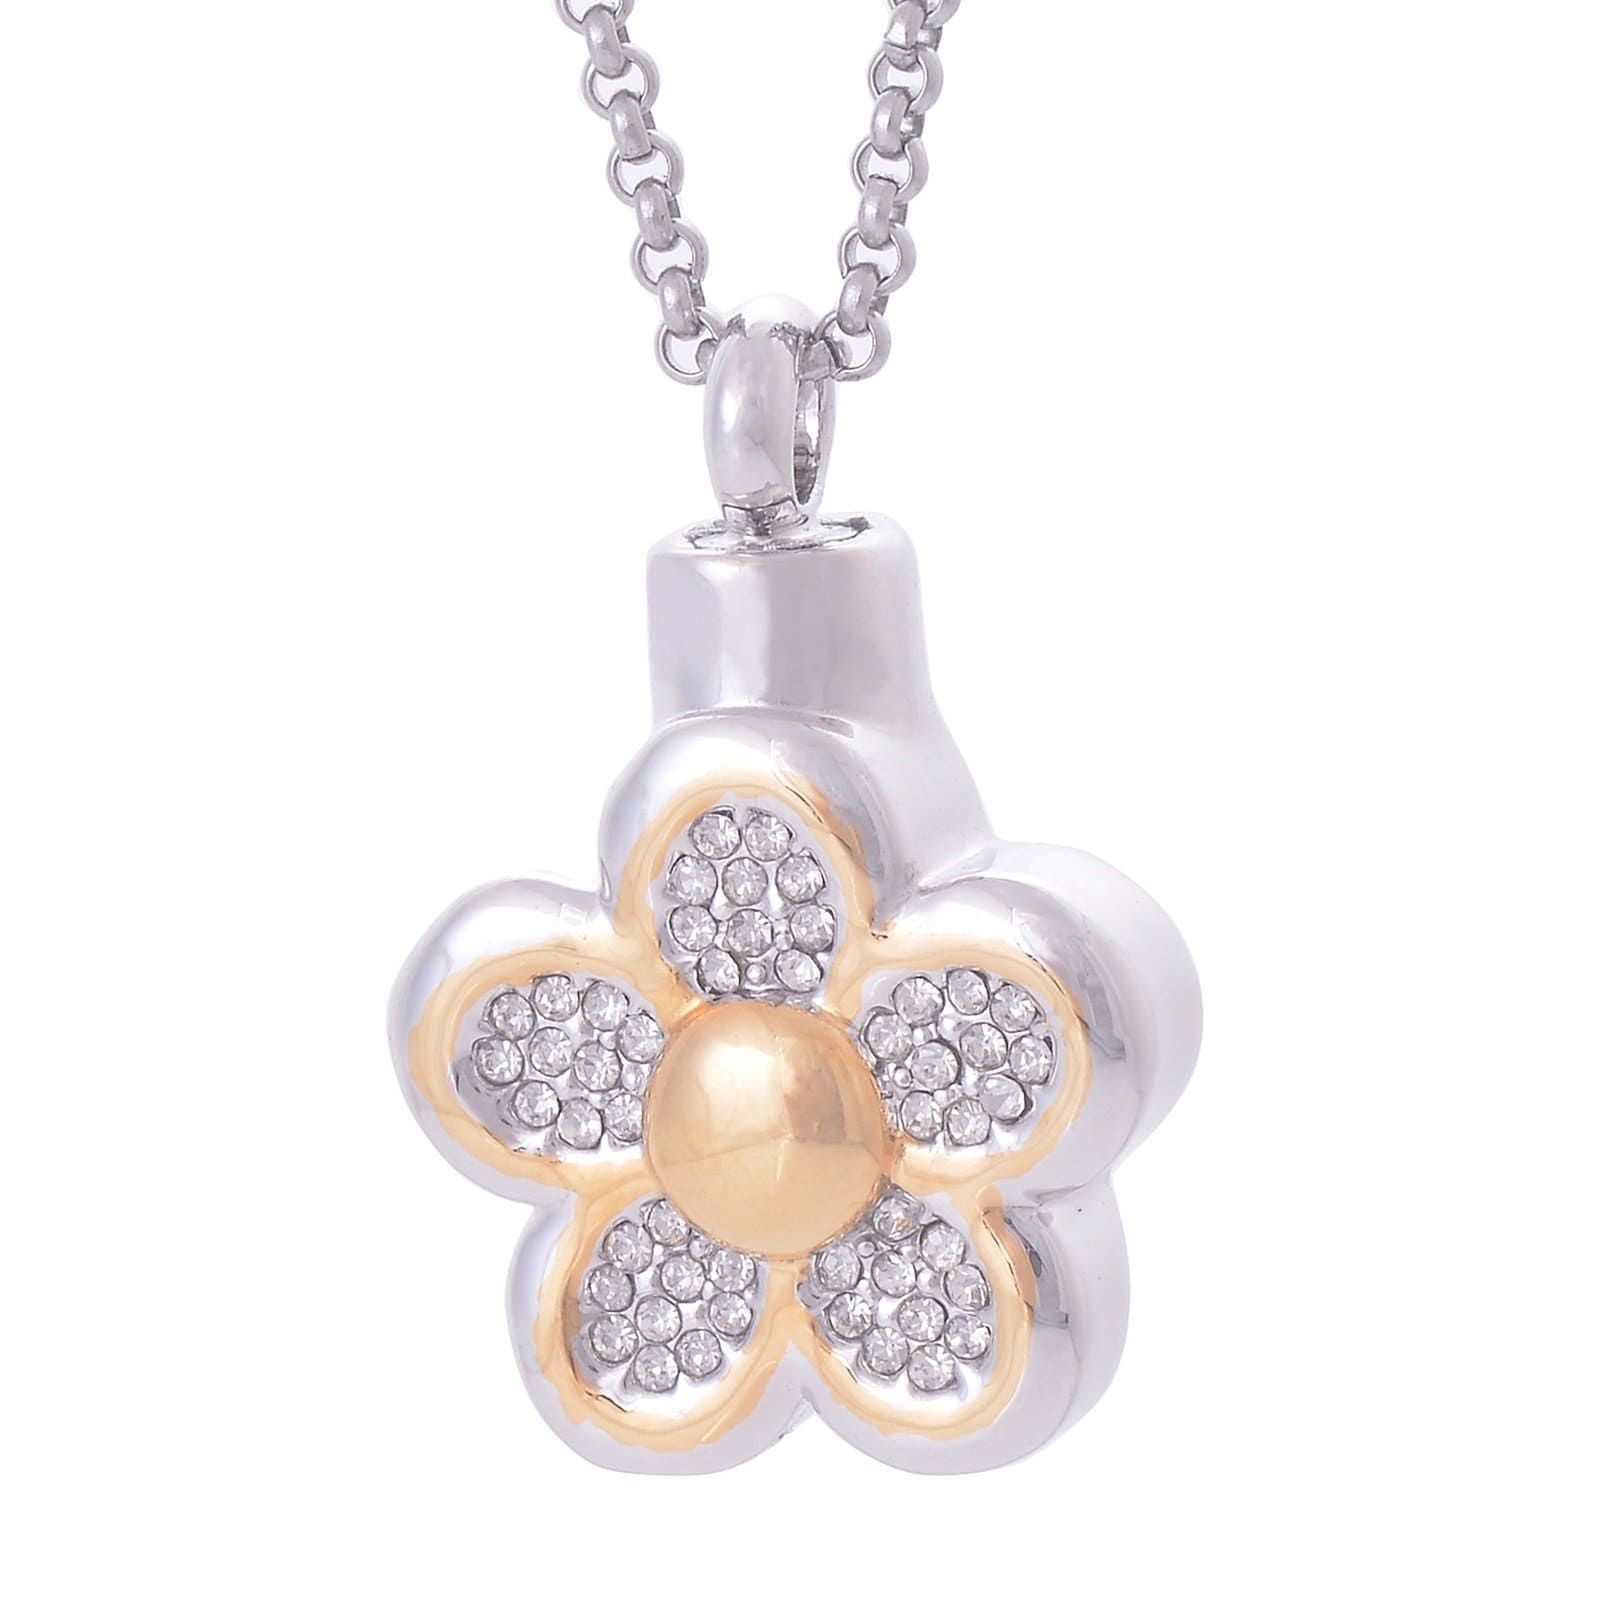 Ashes Pendant for Women Urn Necklace Keepsake Jewelry Stainless Steel Cubic Zirconia Flower Gold